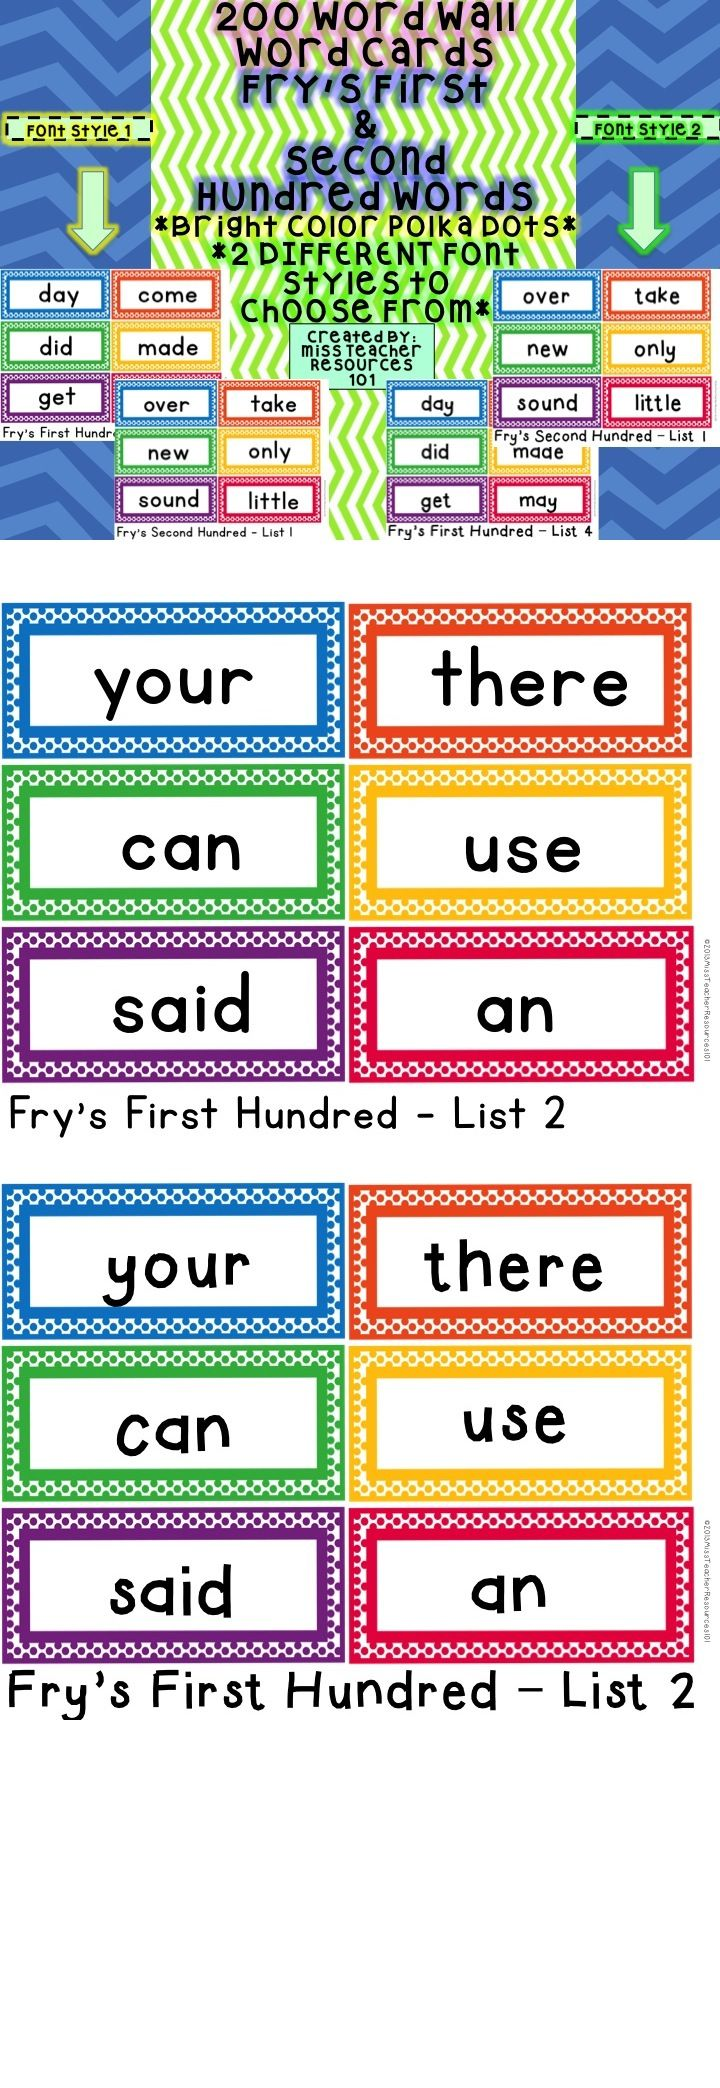 Worksheet Fry Word Cards sight words word wall cards frys first 200 color polka dots